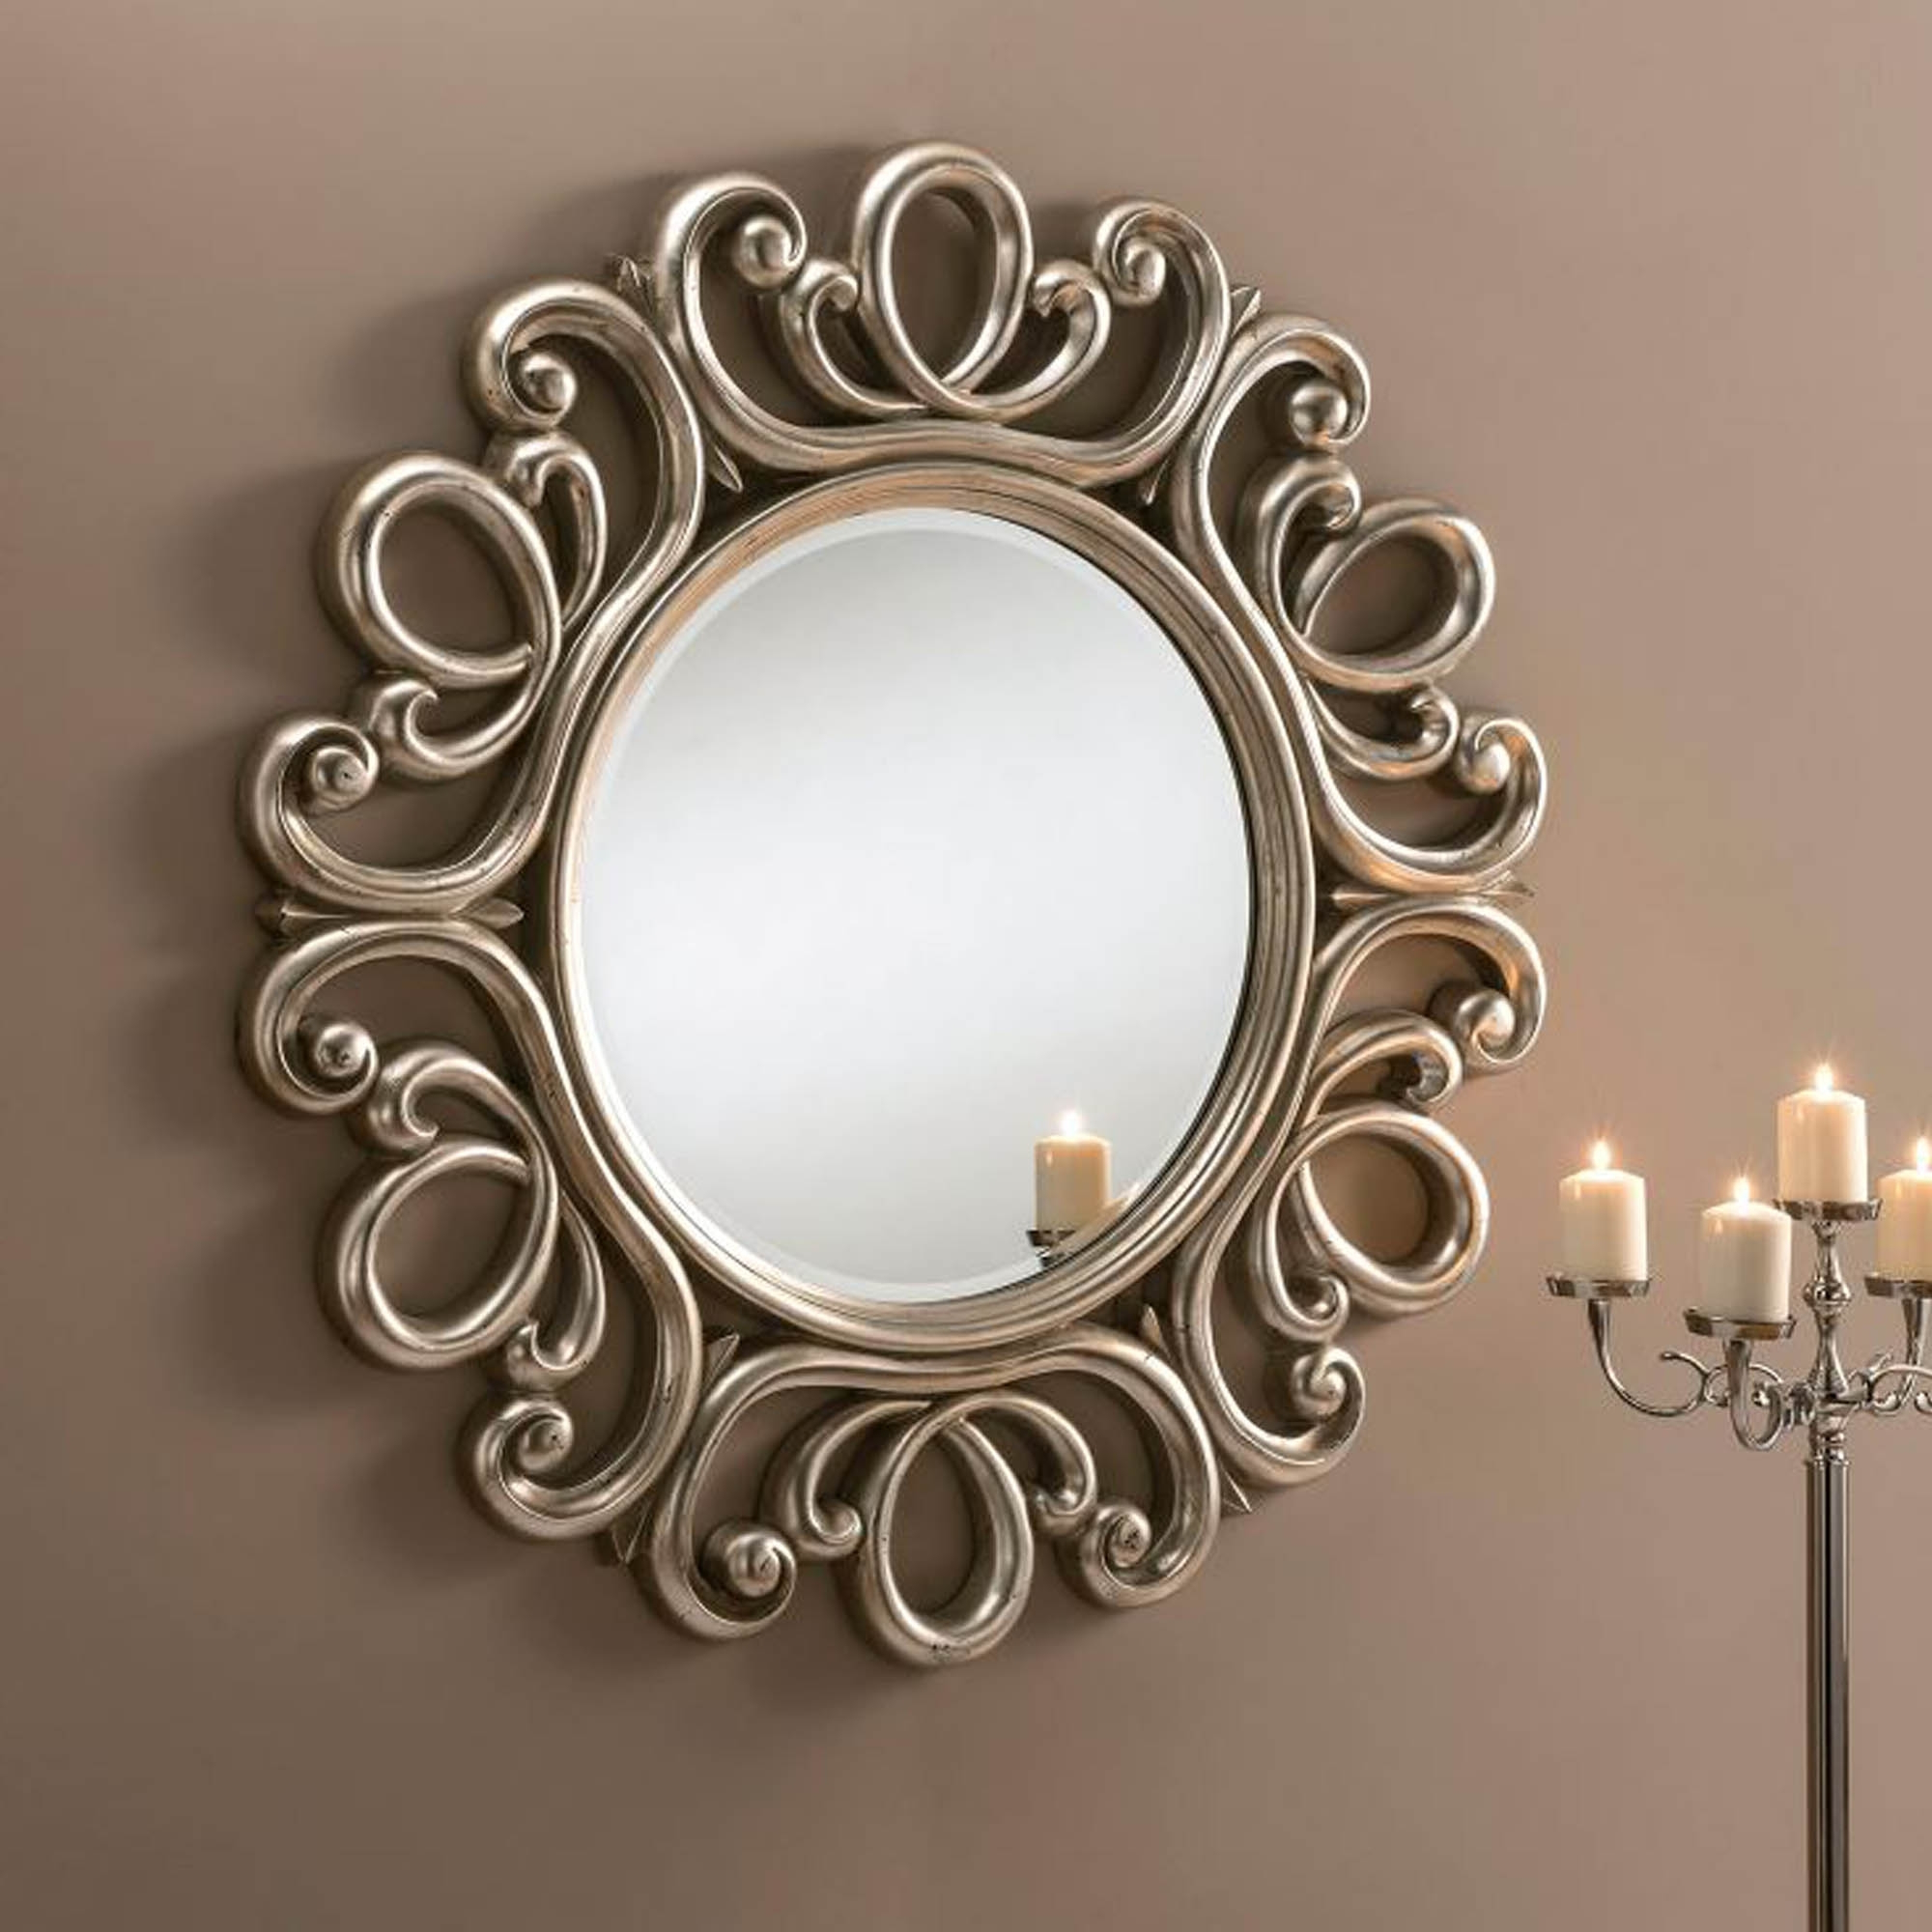 Antique Silver Swirl Ornate Wall Mirror Regarding Most Popular Antique Silver Wall Mirrors (Gallery 14 of 20)